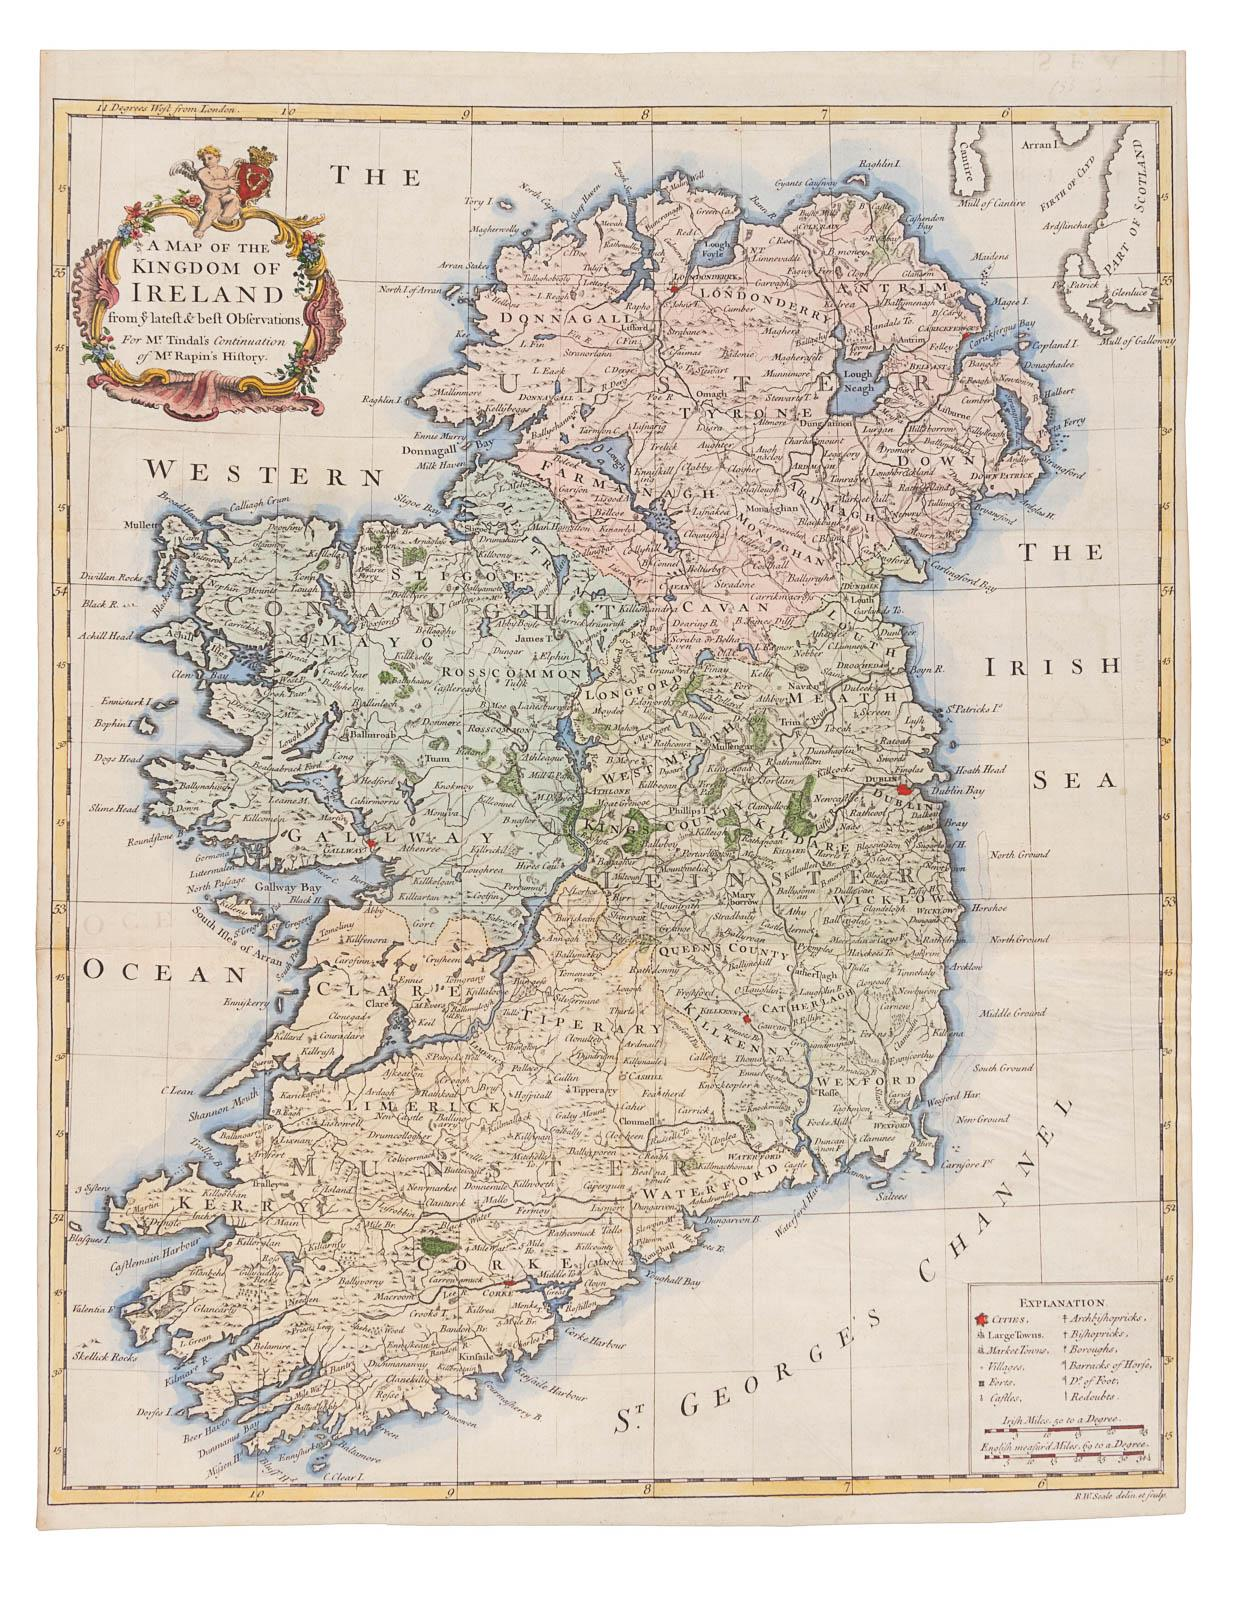 A Map of the Kingdom of Ireland from ye Latest & Best Observations Kingdom Of Ireland Map on republic of china map, democratic republic of the congo map, southern ireland map, kingdom of ireland flag, union of soviet socialist republics map, isle of man map, duchy of milan map, republic of ireland map, provinces of ireland map, grand duchy of tuscany map, confederate states of america map,